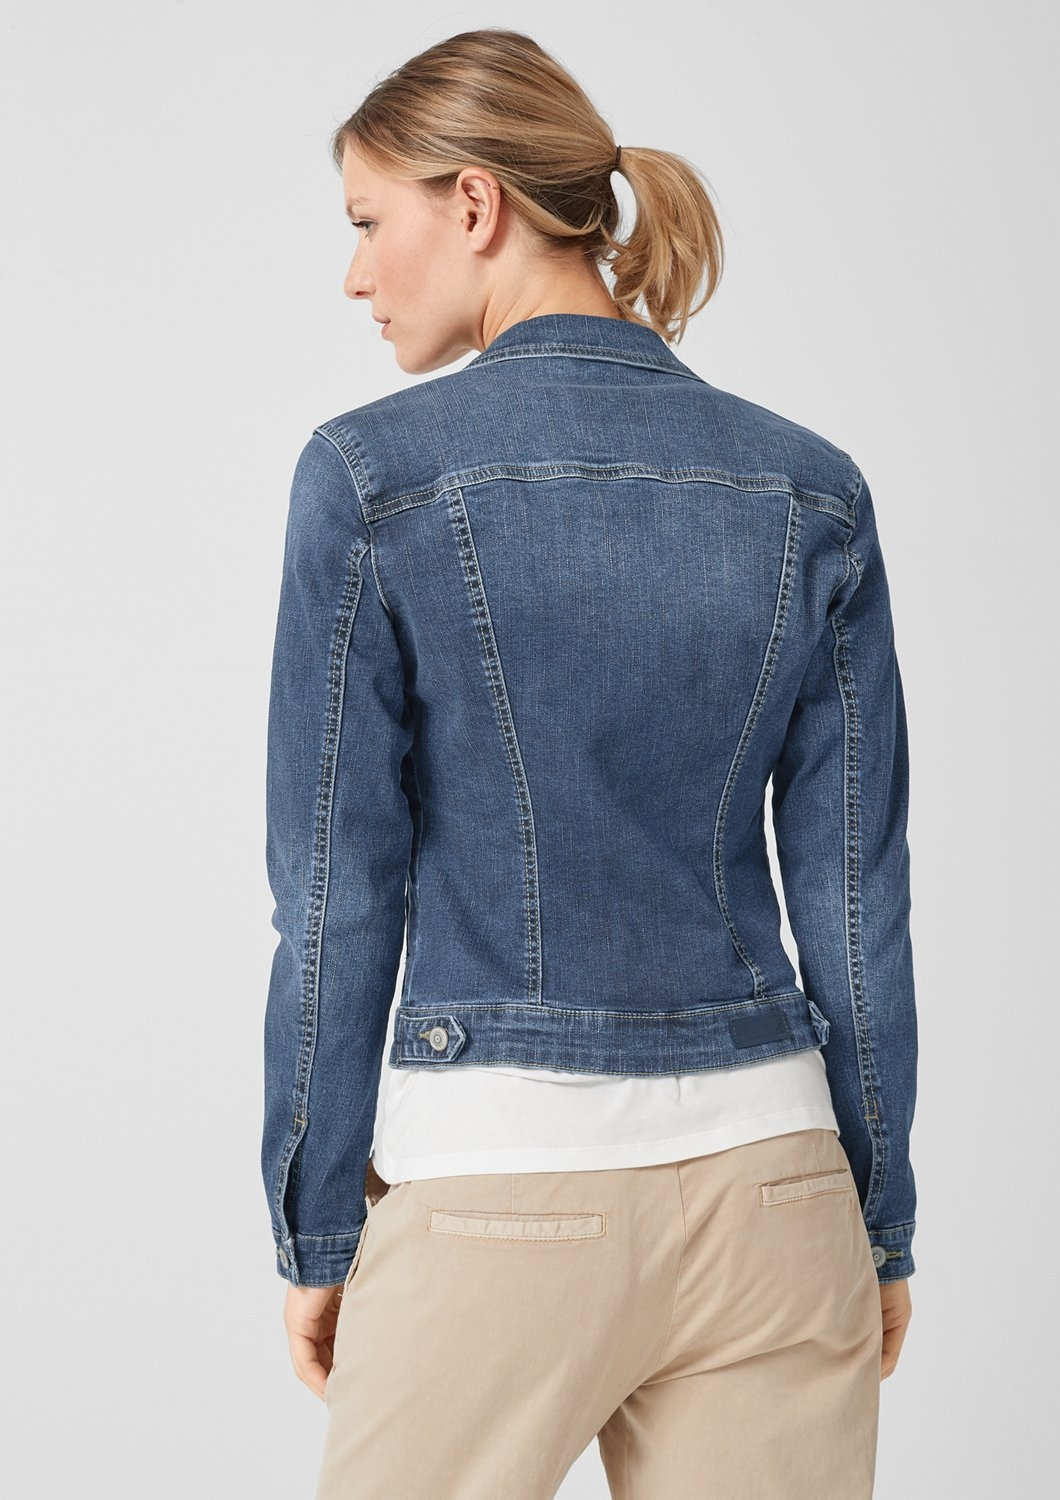 Label Jack Bij S Red Online Comfortabele Denim Stretch oliver Met SUMVGzpLq